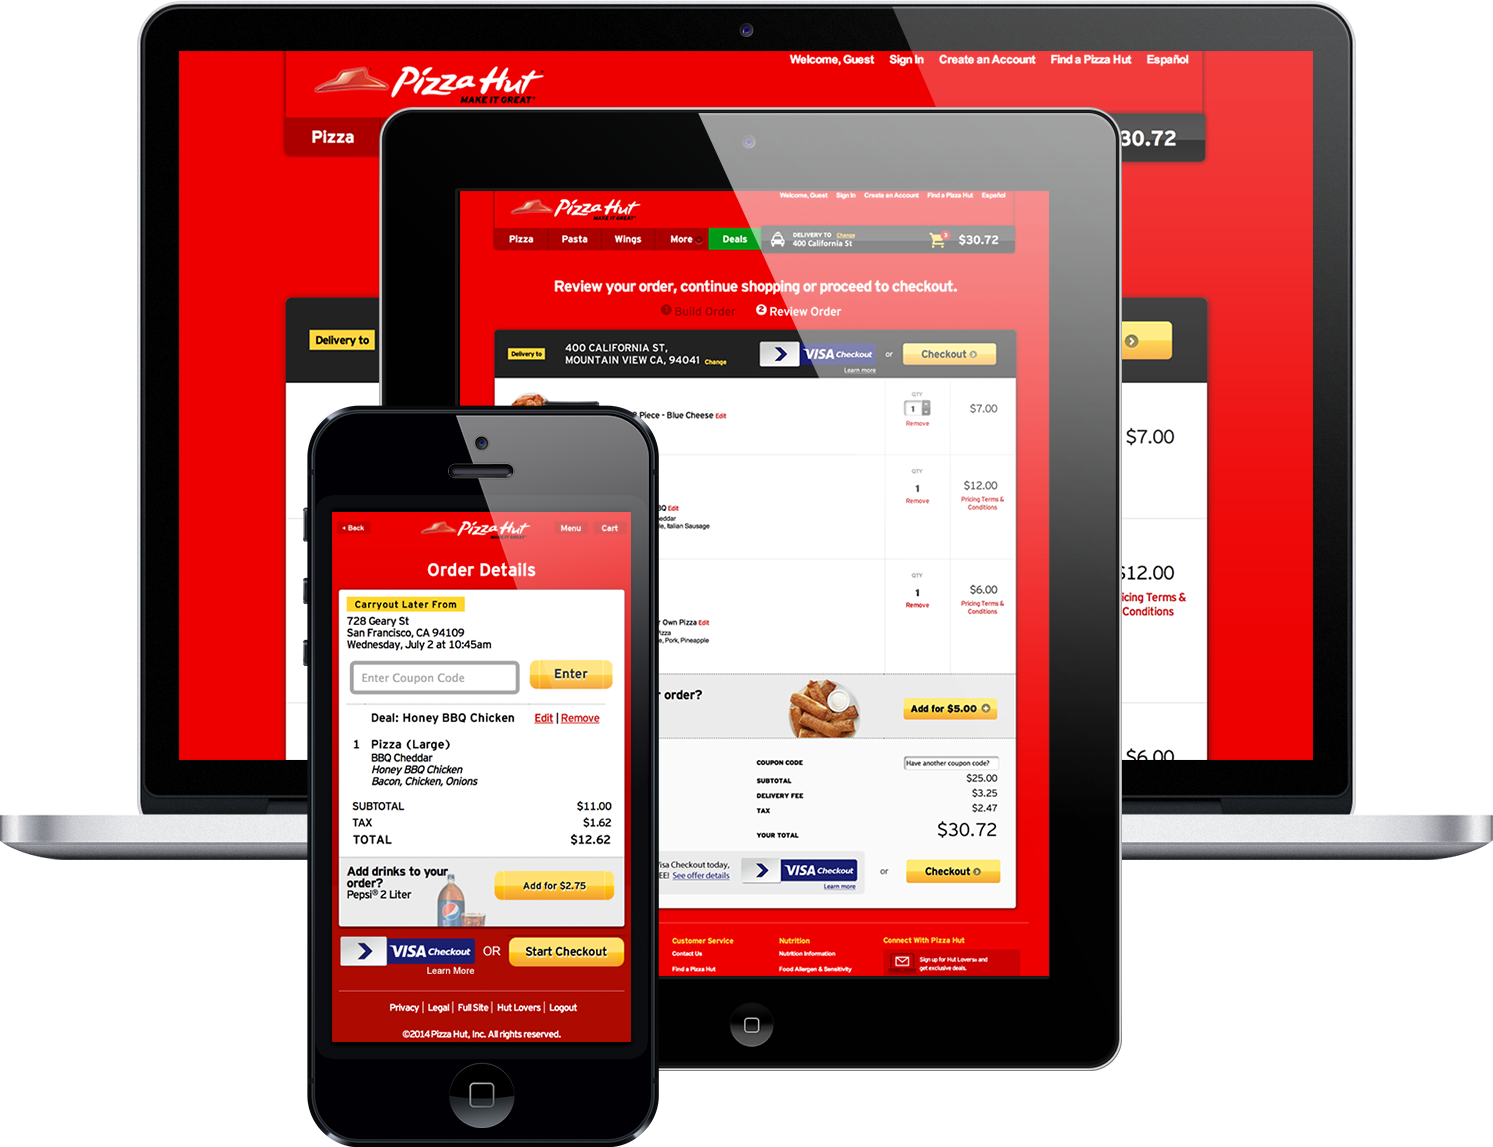 A smart phone, tablet, and laptop displaying a Visa Checkout option on the Pizza Hut website.